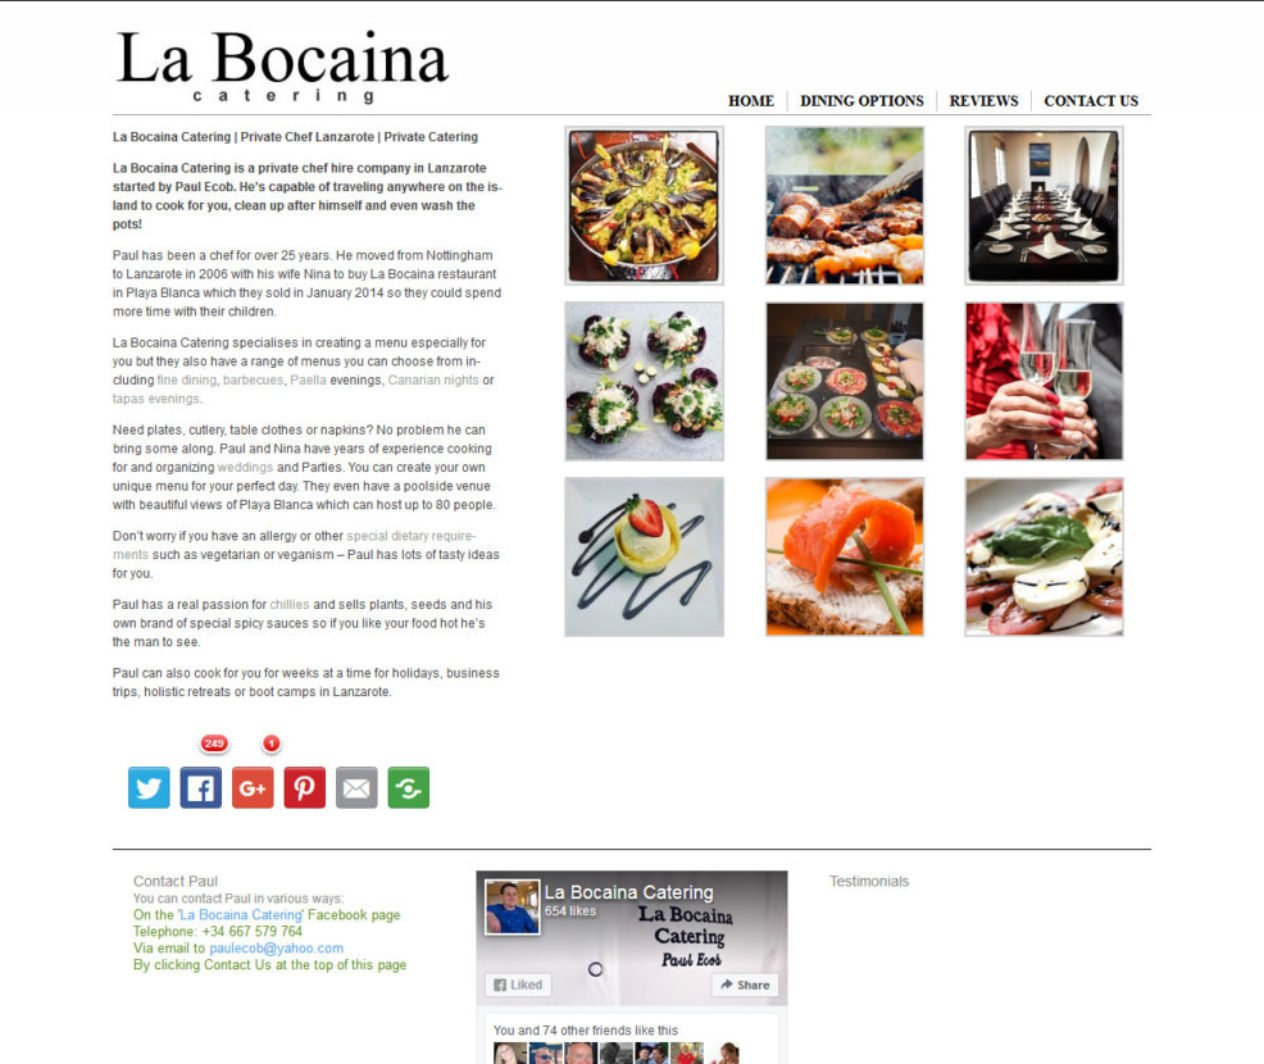 La Bocaina Catering